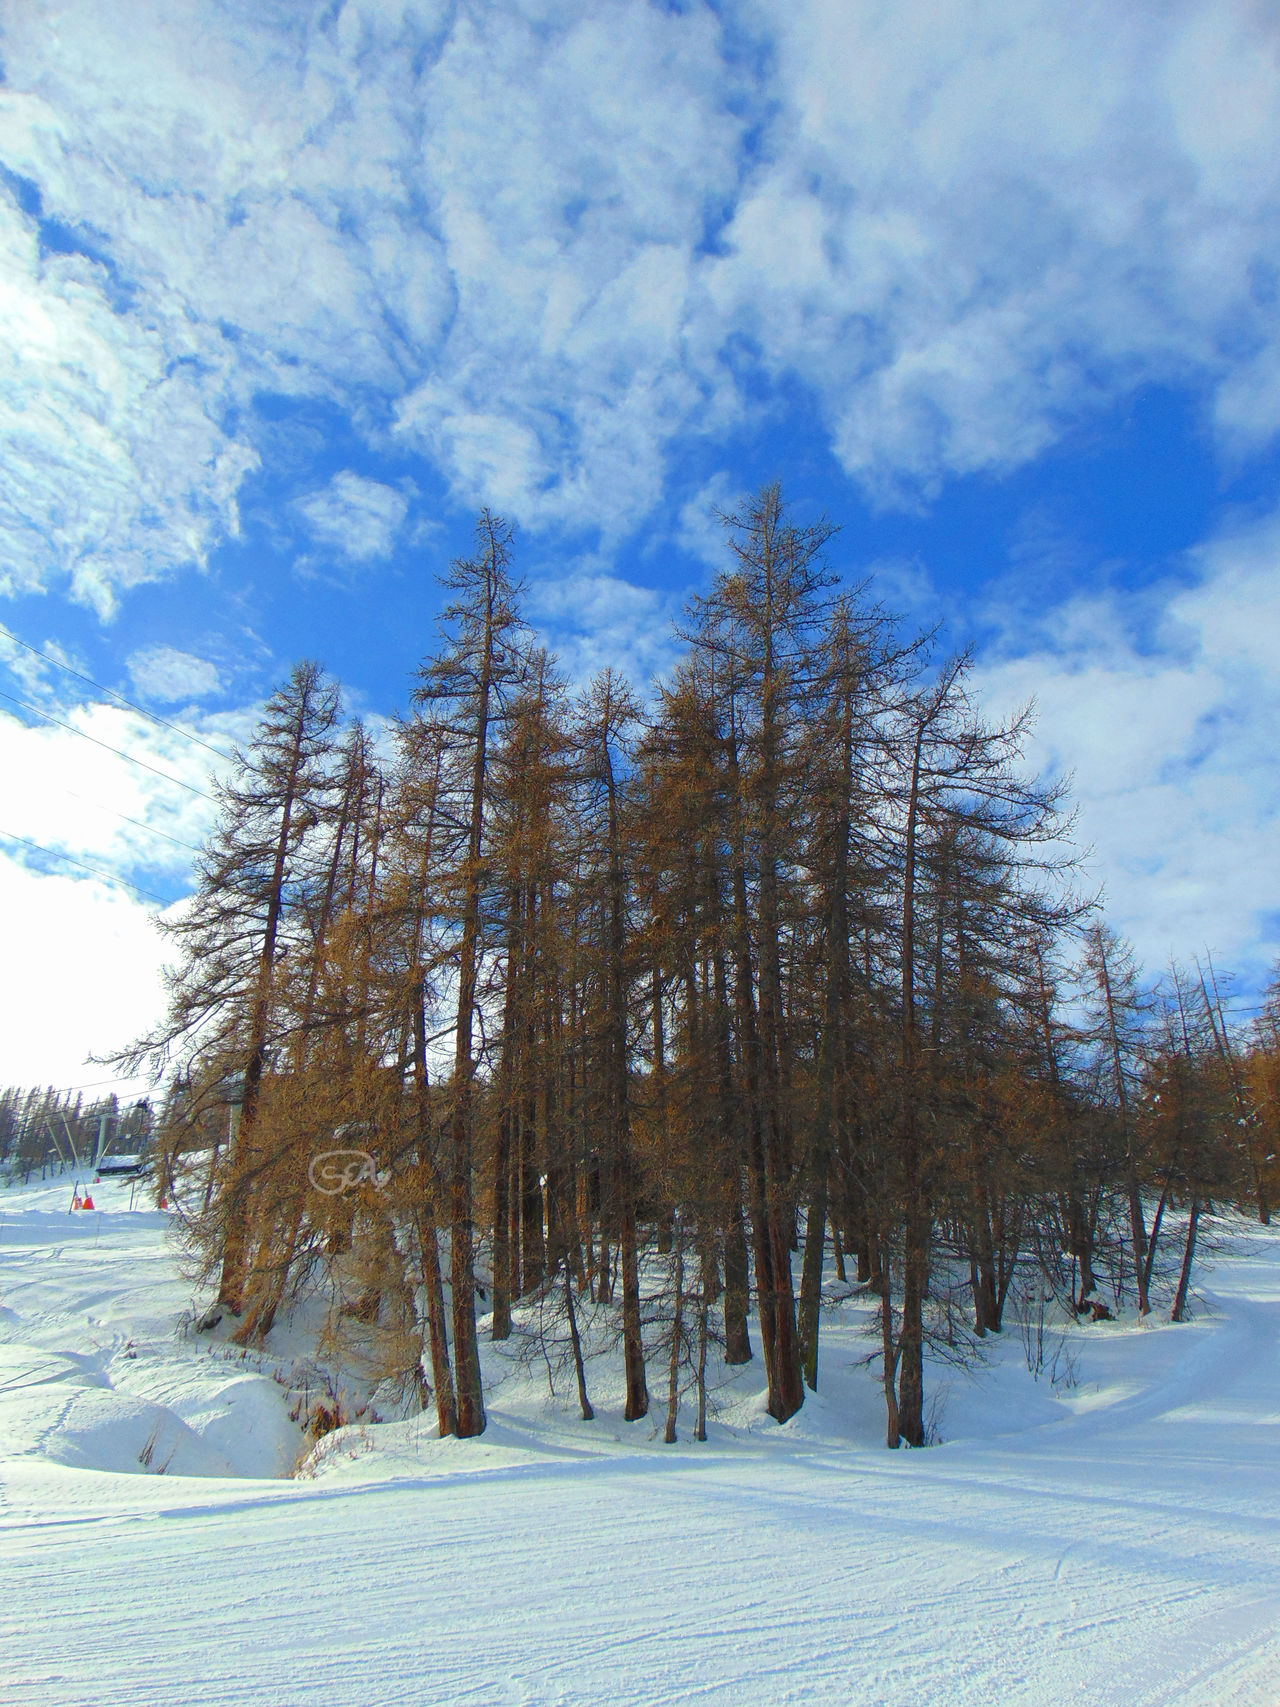 Serre Ratier, France Beauty In Nature Cloud - Sky Cold Temperature Europe Forest Landscape Landscape_Collection Landscape_photography Nature Nature Nature Photography Nature_collection No People Outdoors Serre Chevalier  Serre Ratier Ski Sky Snow Snowboarding Travel Destinations Travel Photography Traveling Tree Winter